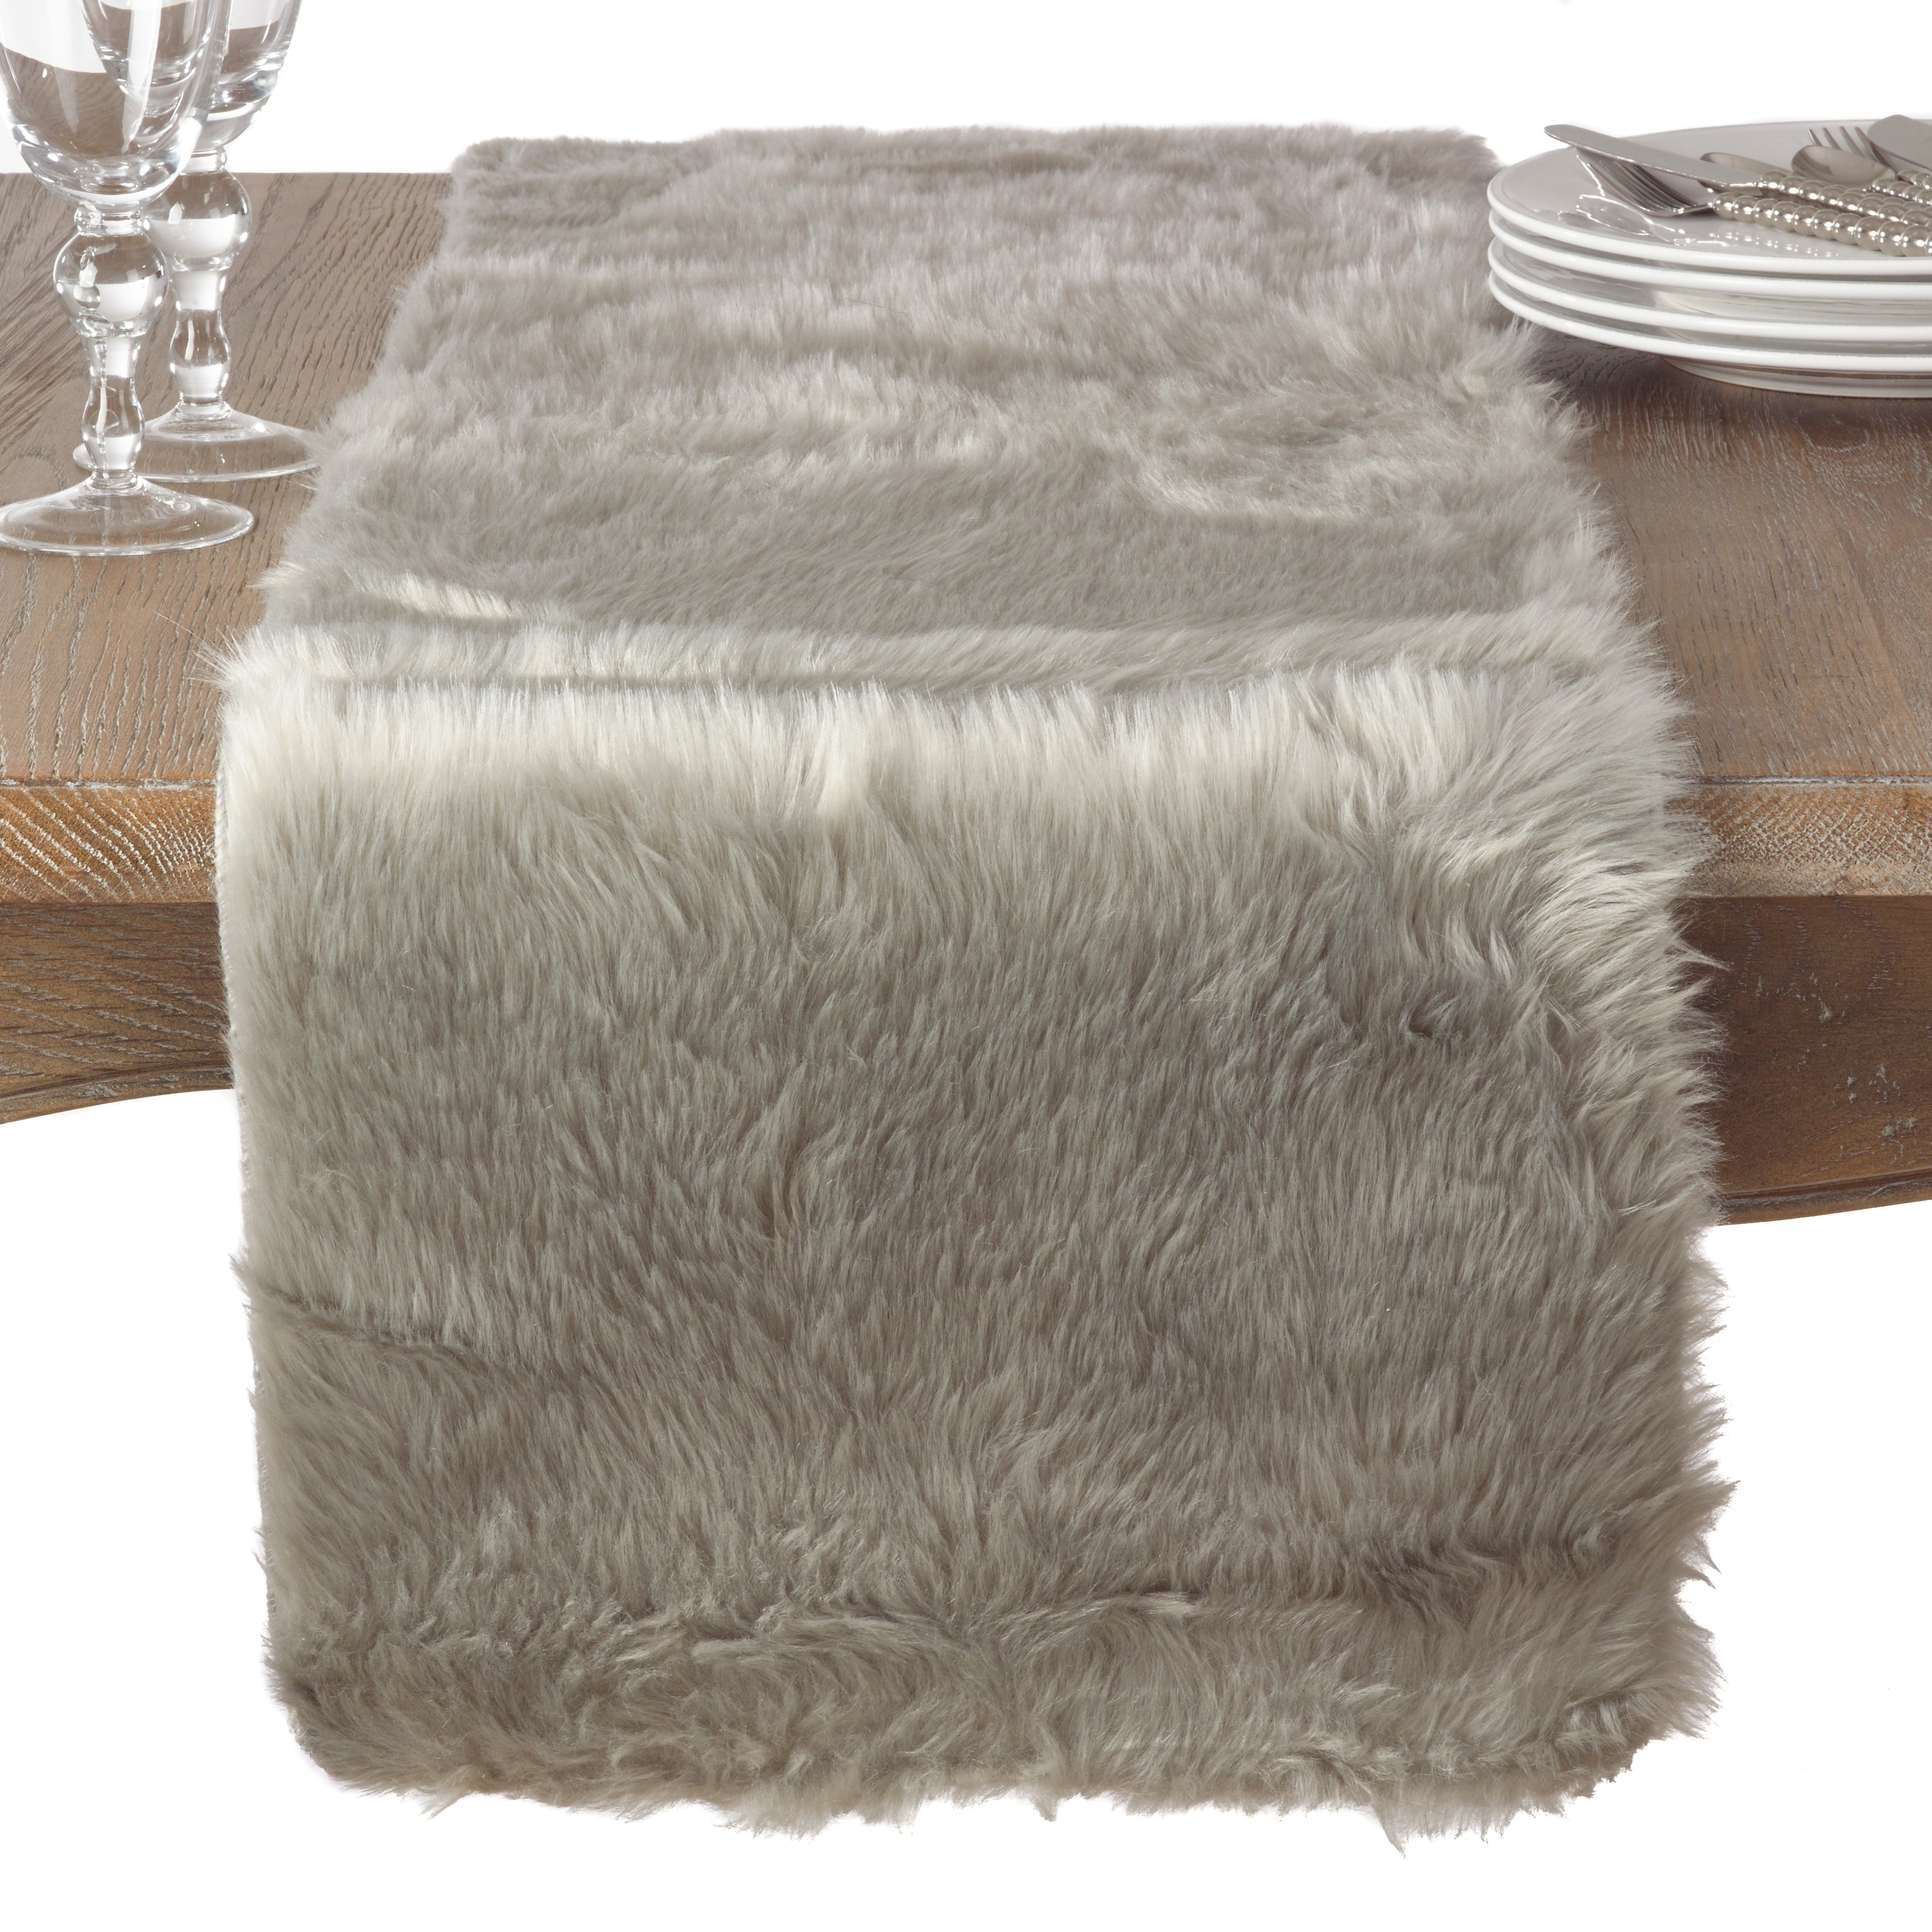 Juneau Collection Faux Fur Table Runner Free Shipping On Orders Over 45 12172790